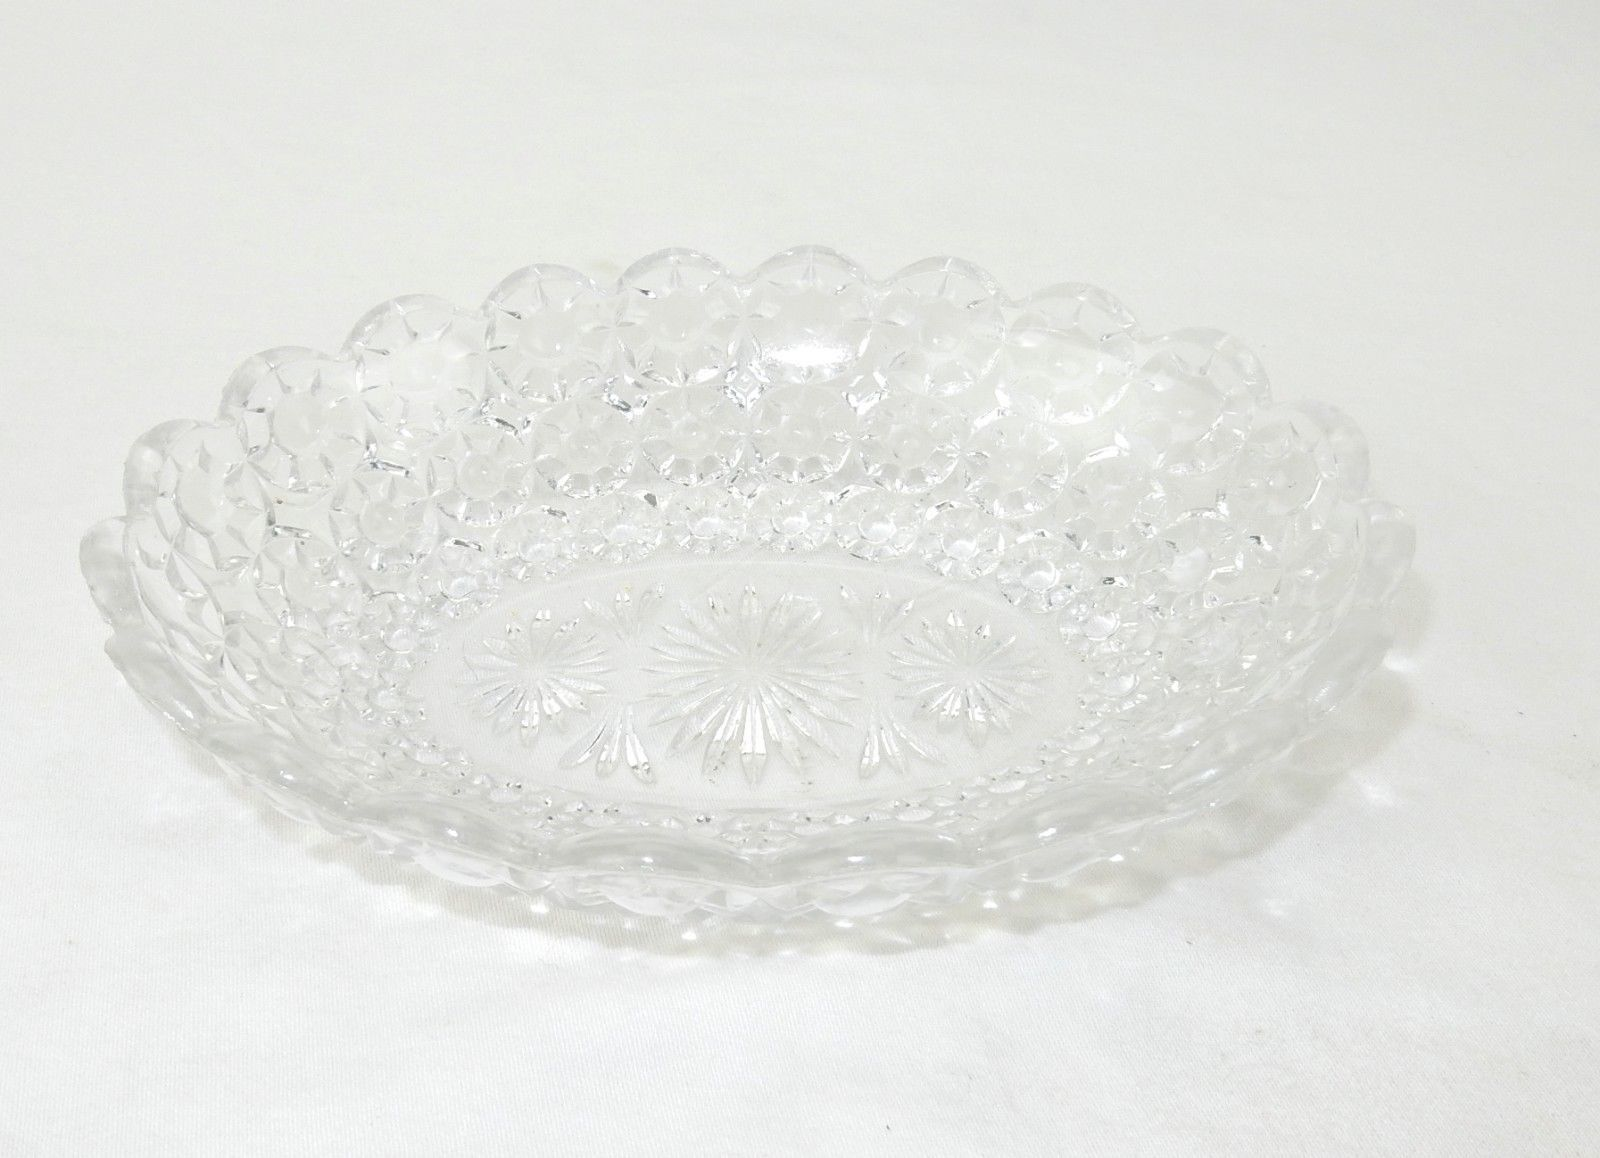 "Primary image for Pressed Clear Glass Candy/Nut Bowl, Serving Dish, Relish Dish, Oval 8"" x 6"""